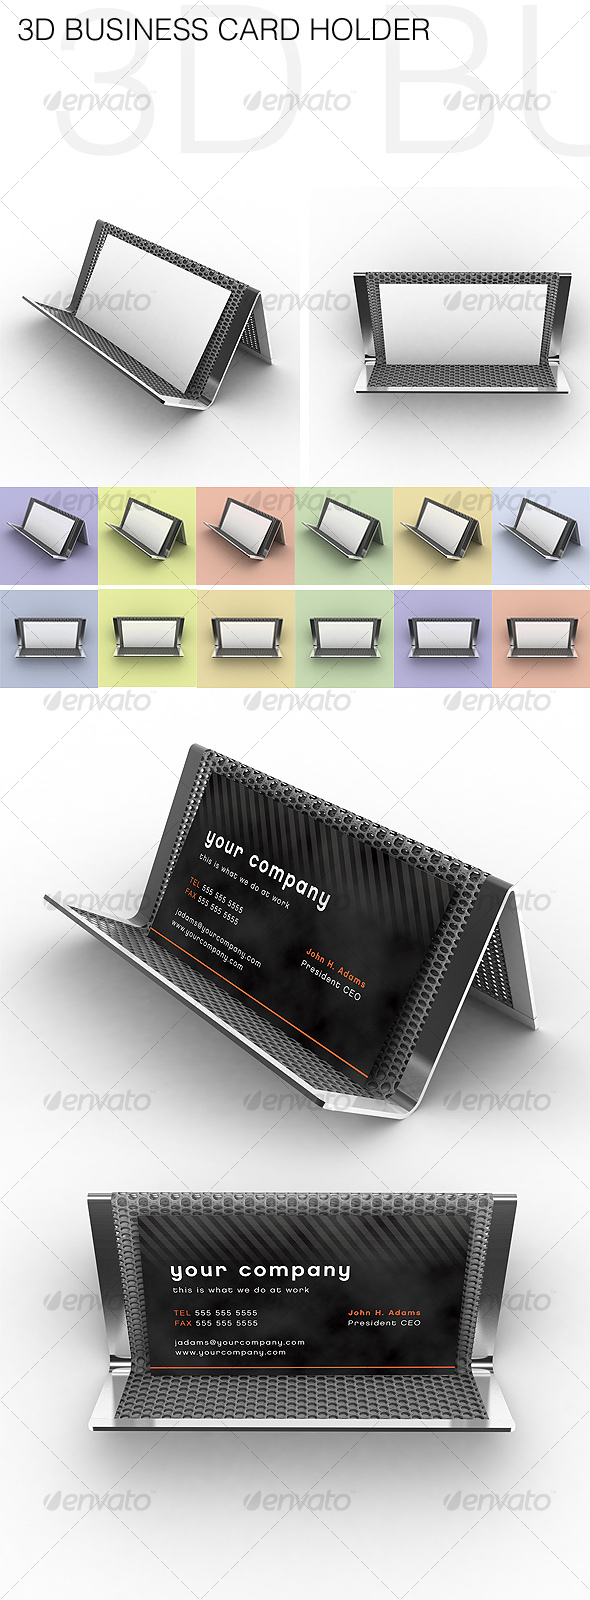 3D Business Card Holder - 3D Renders Graphics